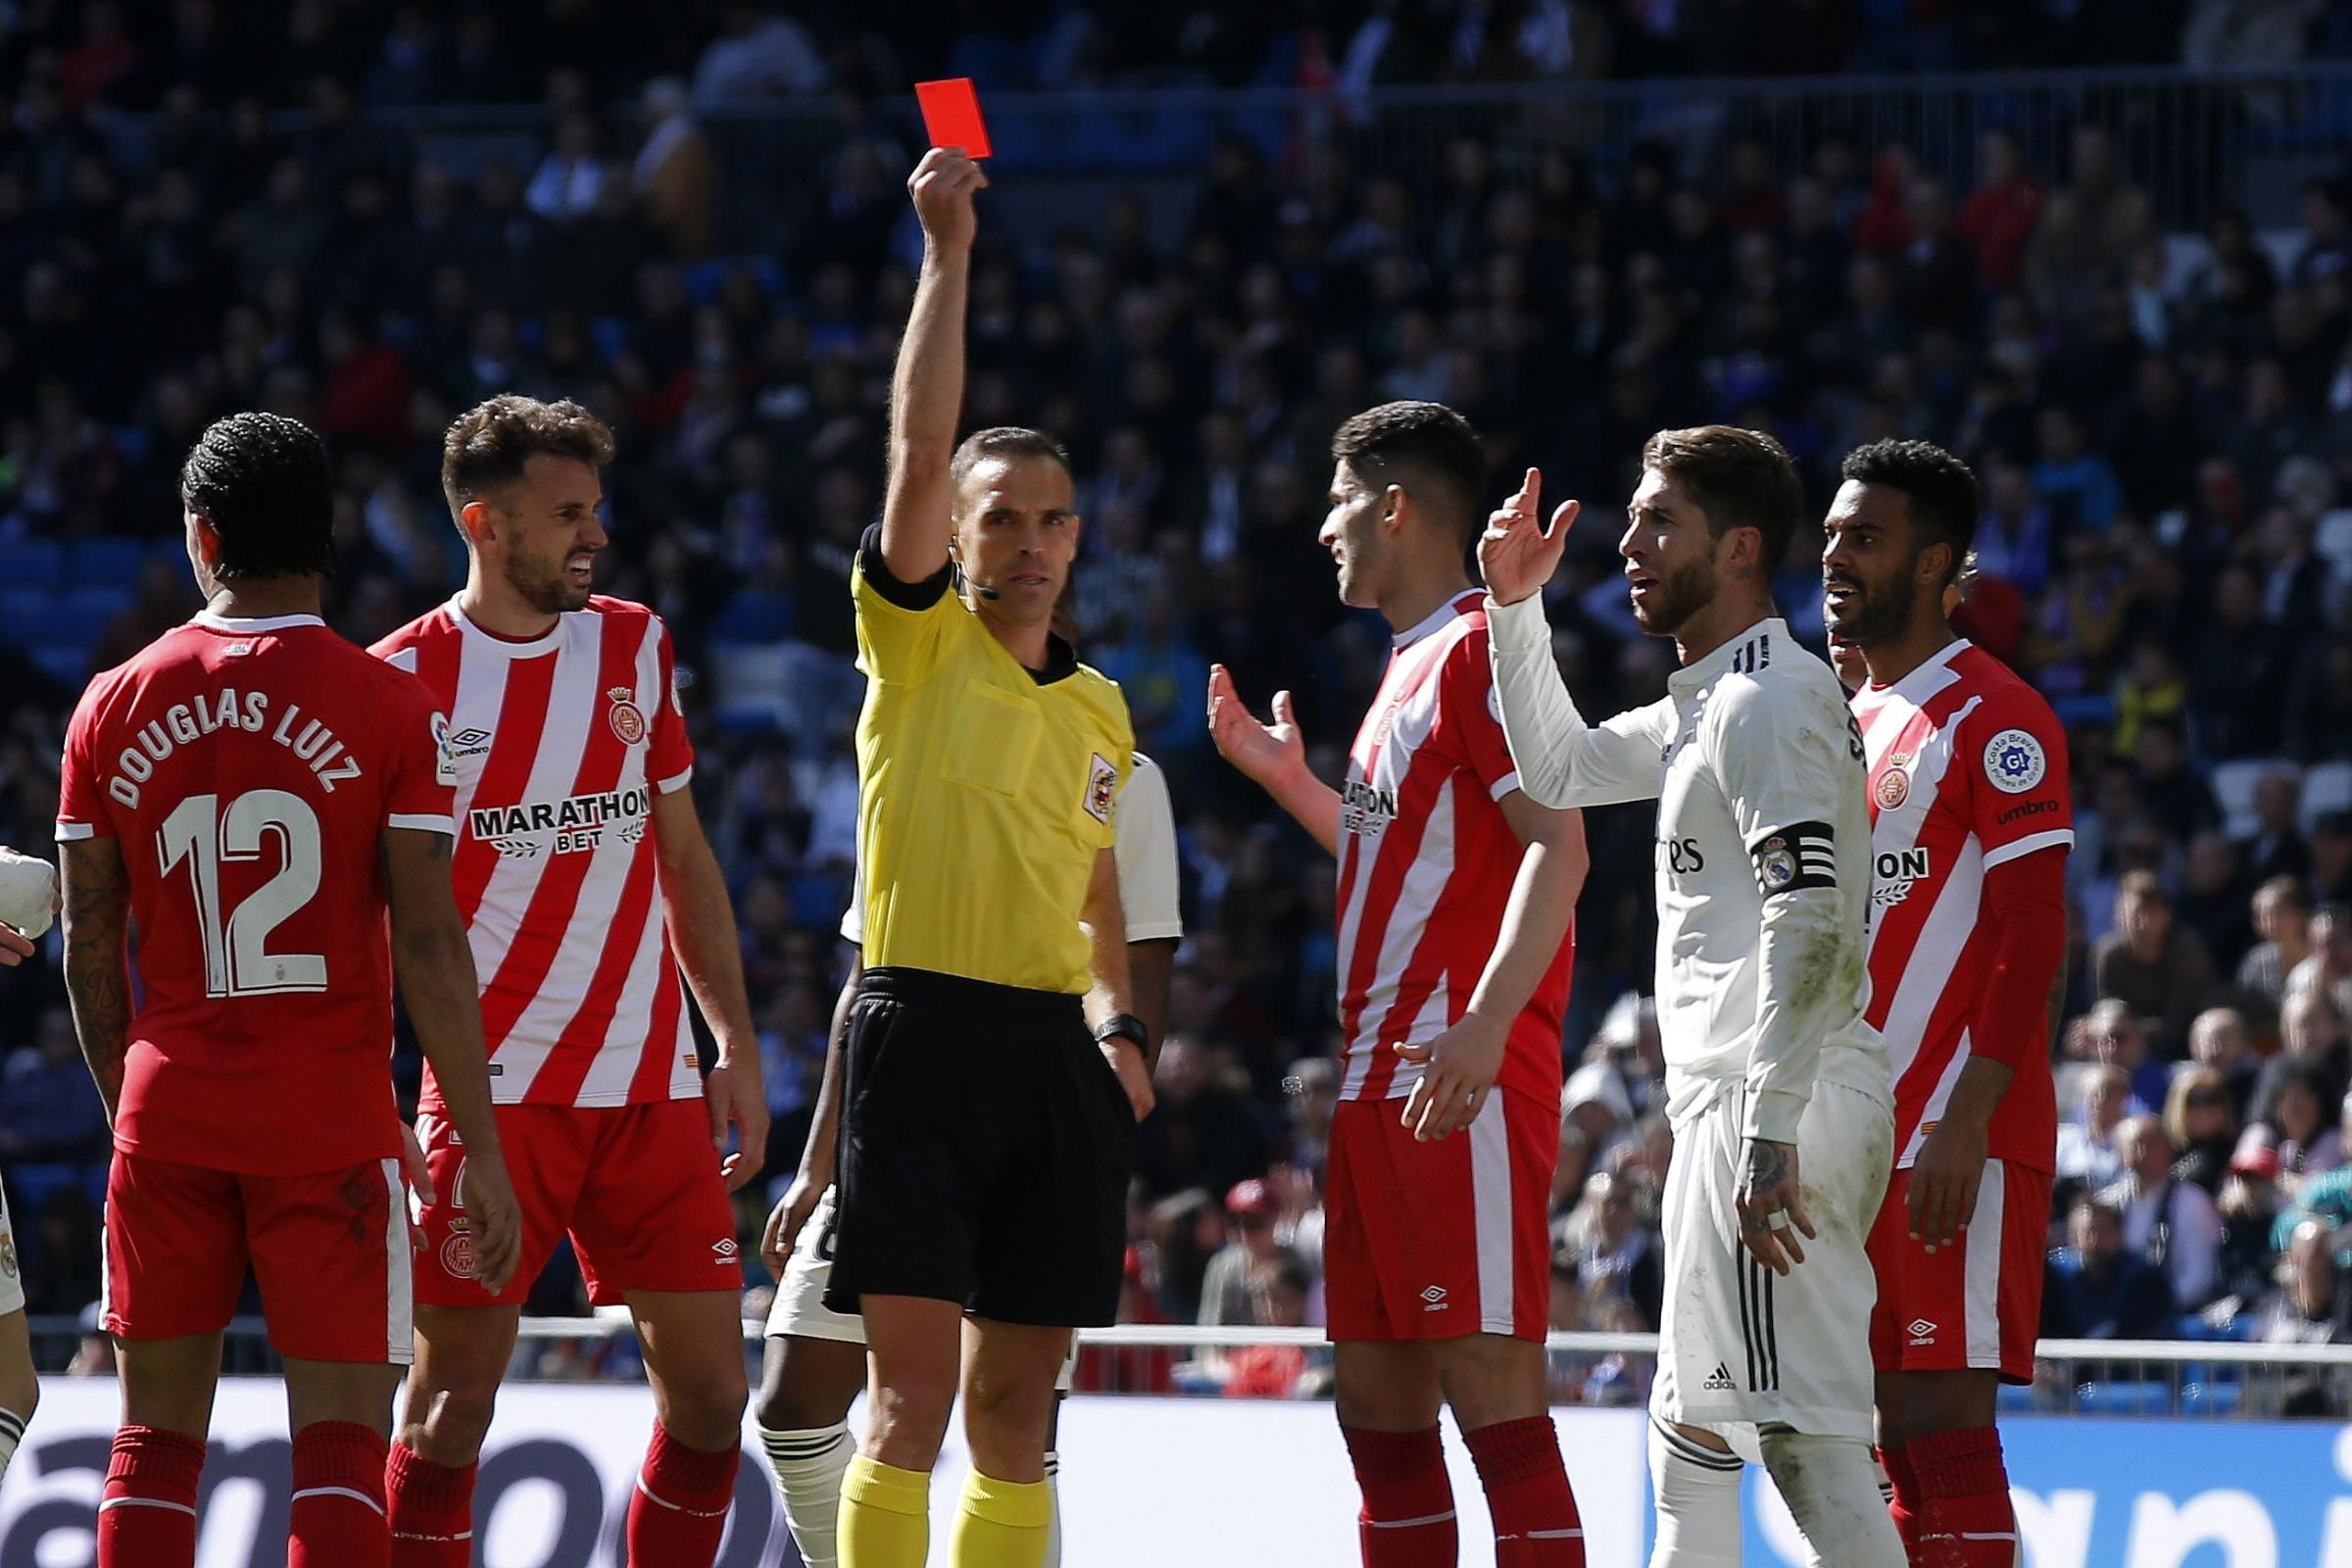 Sergio Ramos saw red as Real Madrid were beaten by Girona